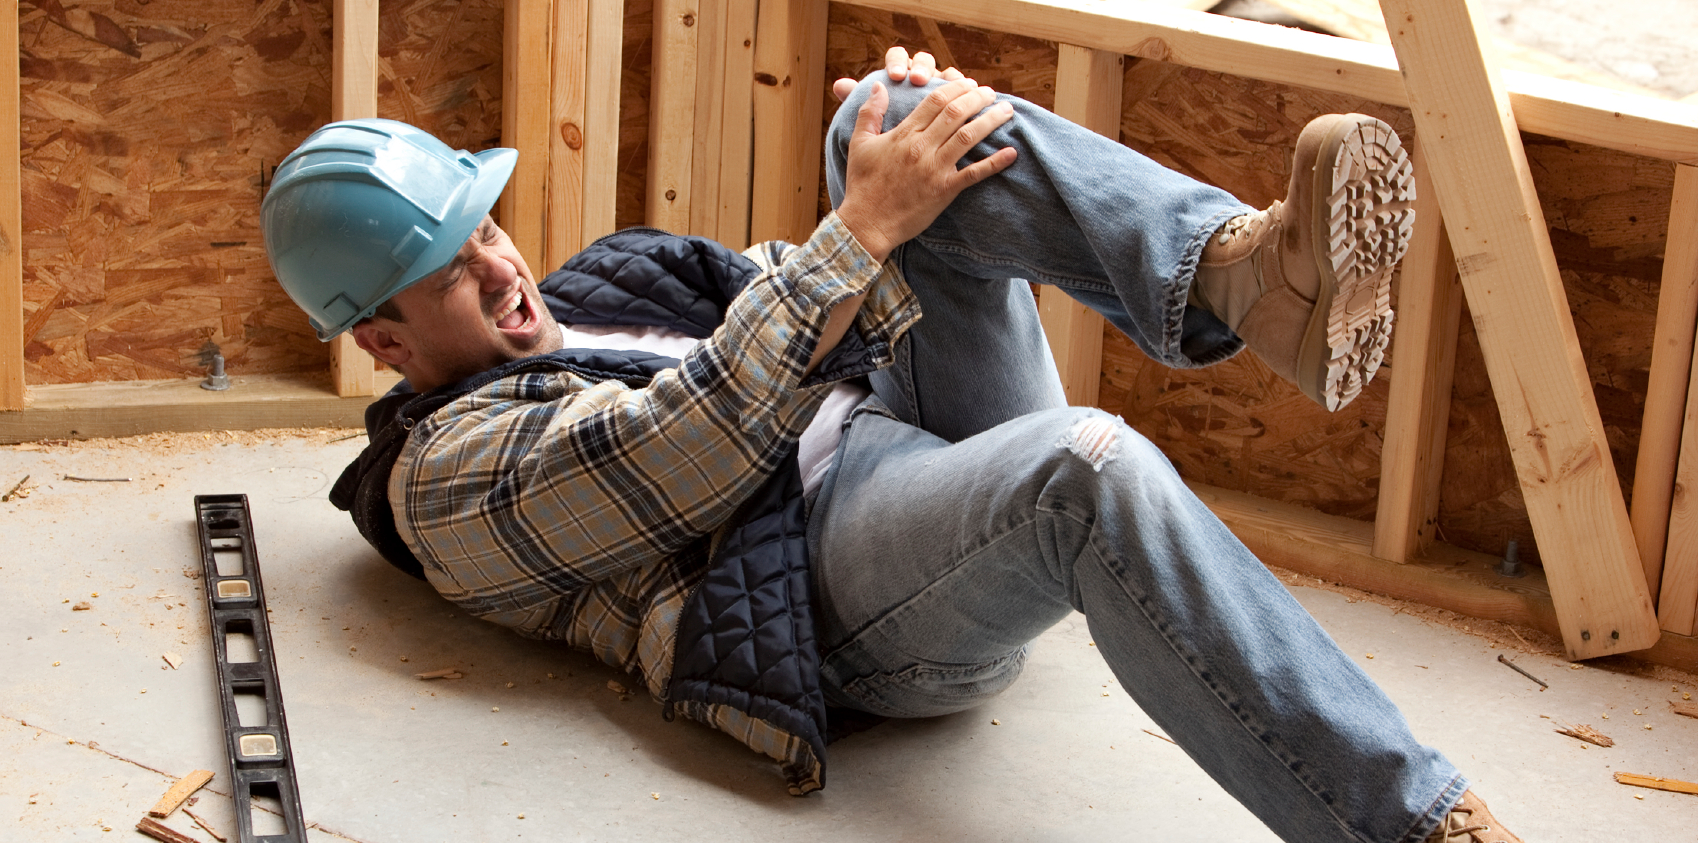 workers compensation attorney Tampa FL